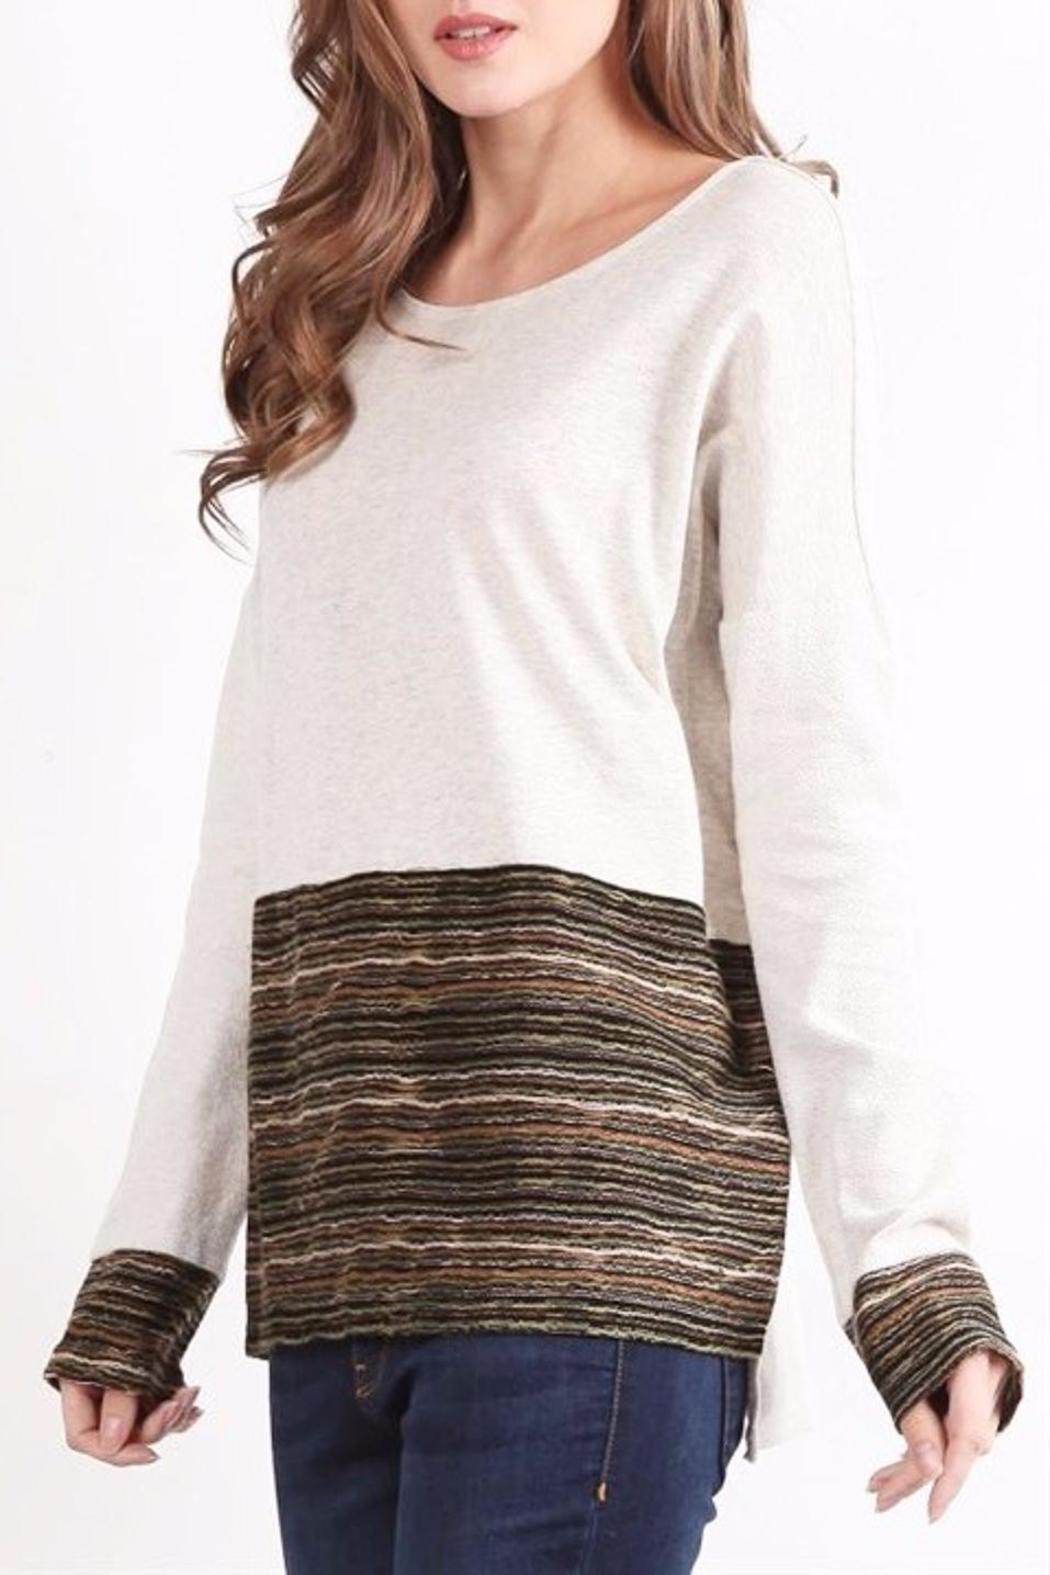 People Outfitter Girl Talk Top - Side Cropped Image